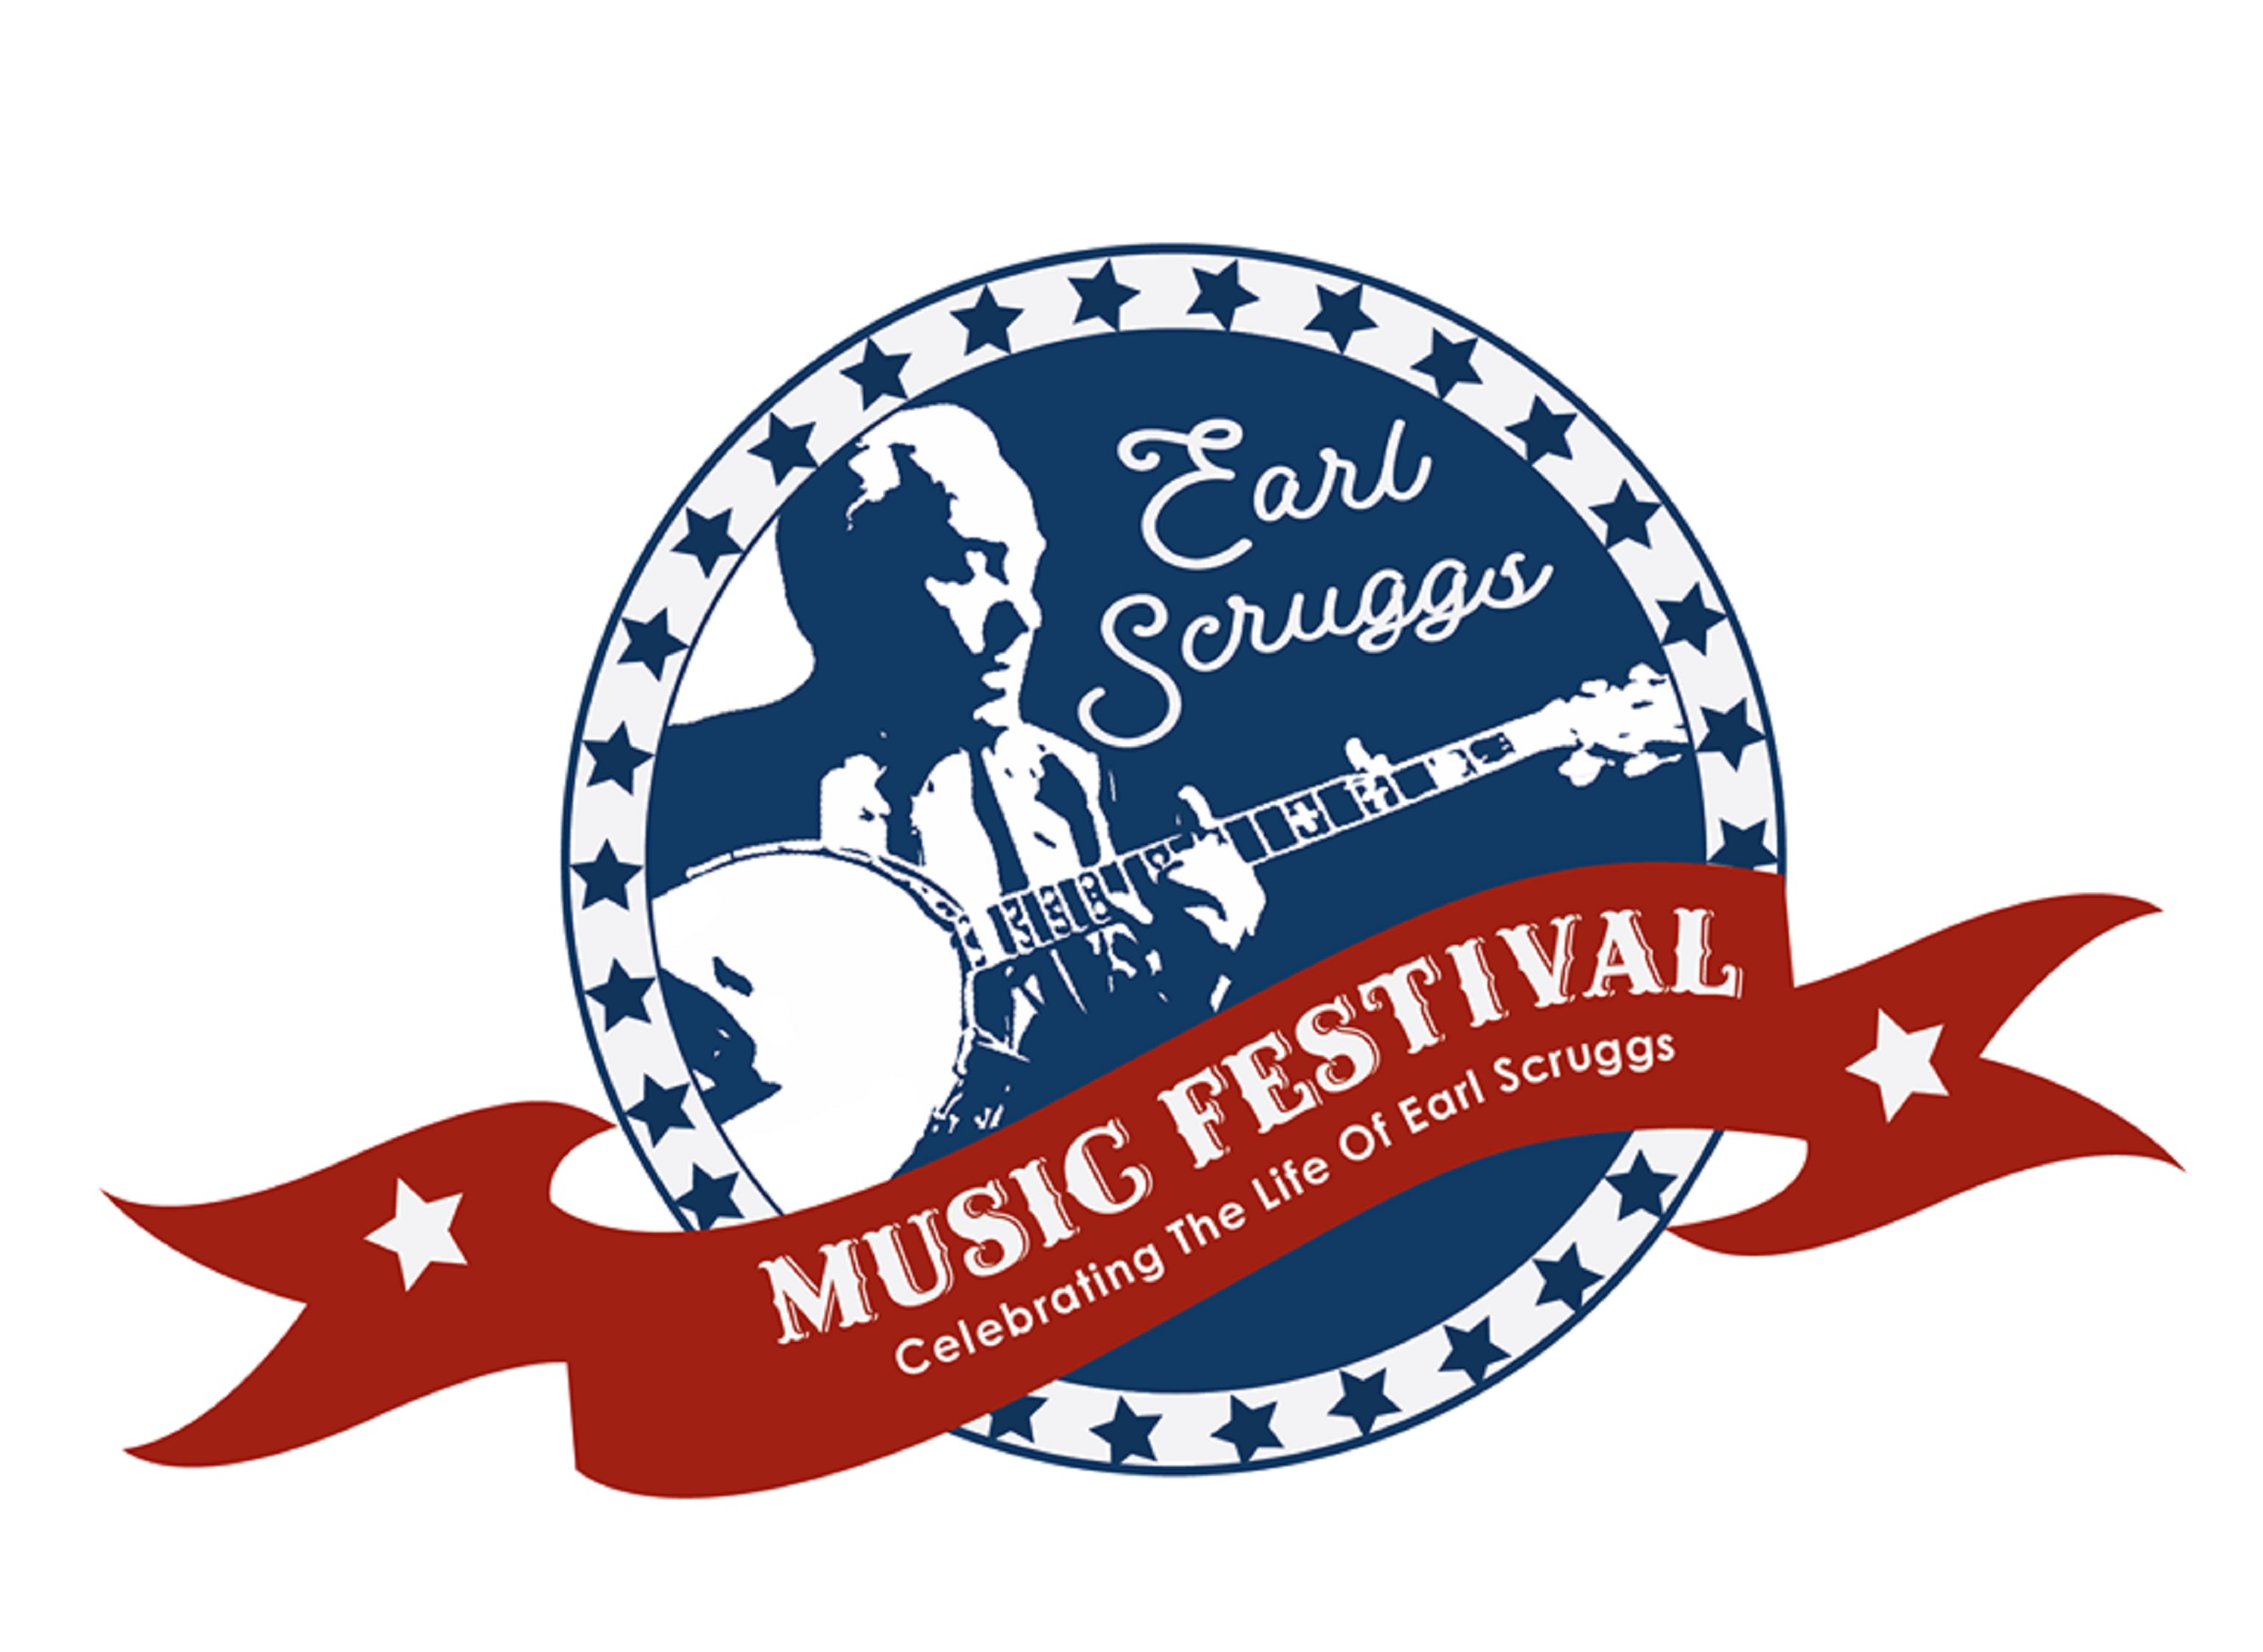 New artists announced for Earl Scruggs Music Festival